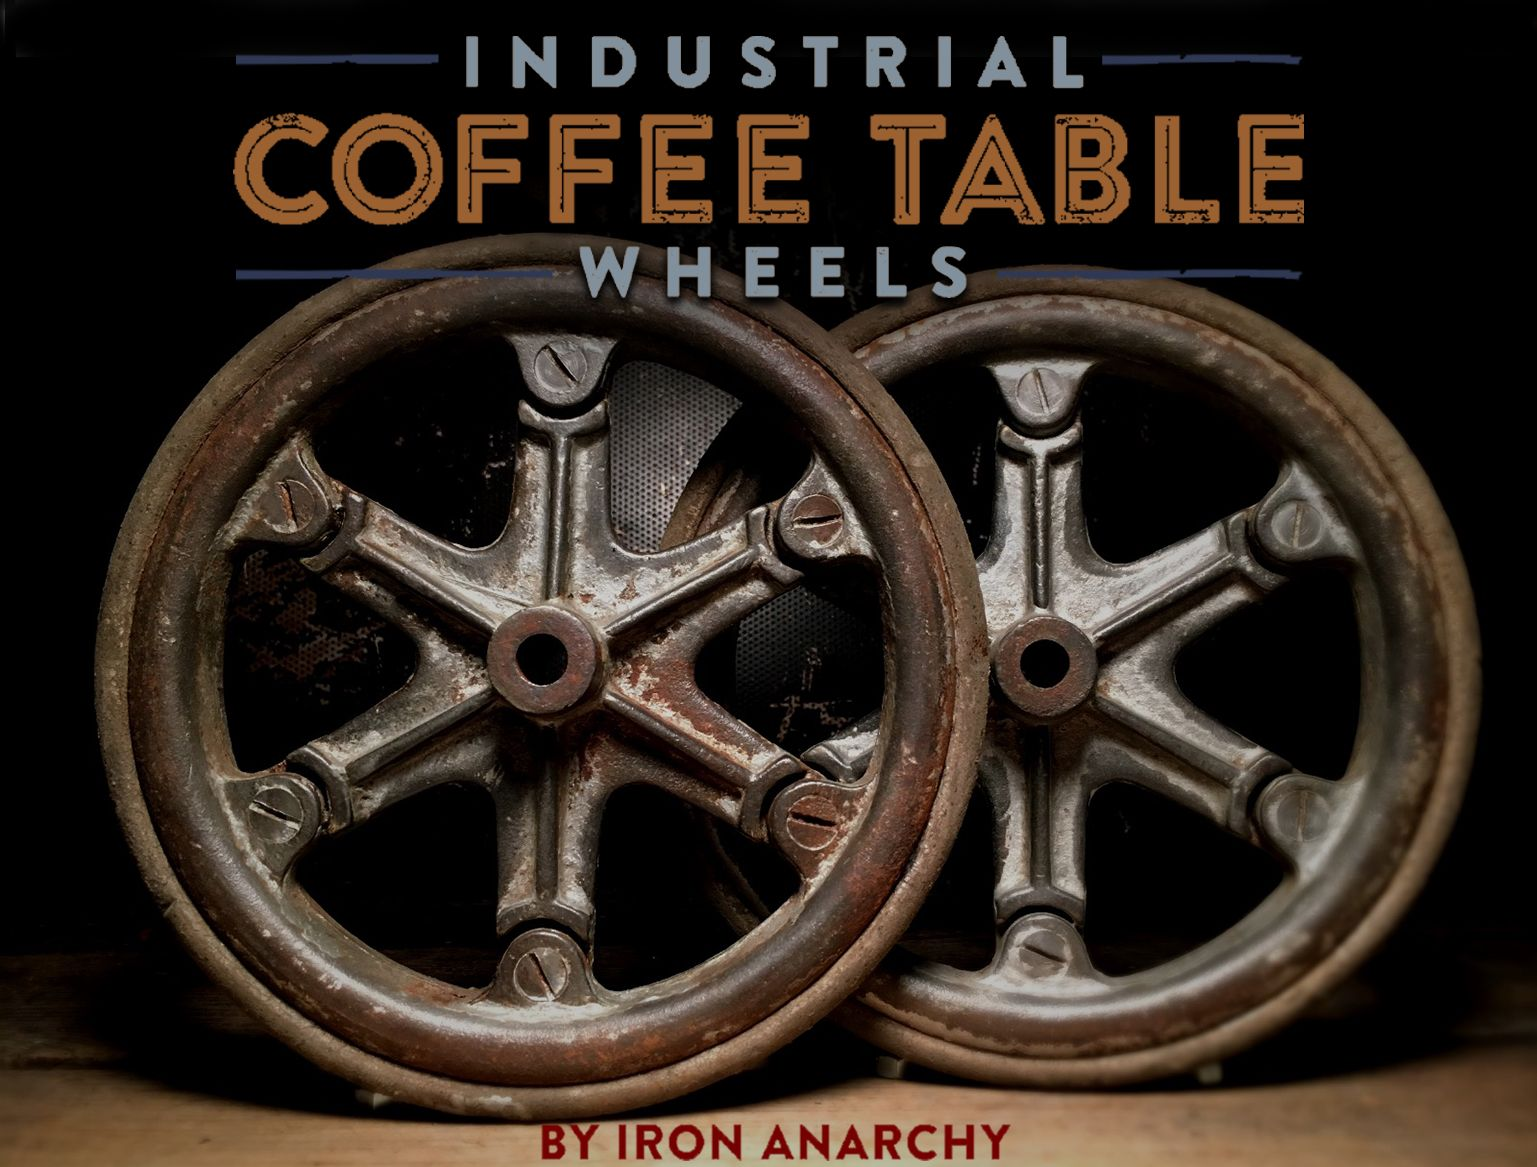 Perfect For Your Industrial Chic Coffee Table  Vintage Iron Factory Cart  Wheels From IronAnarchy.com